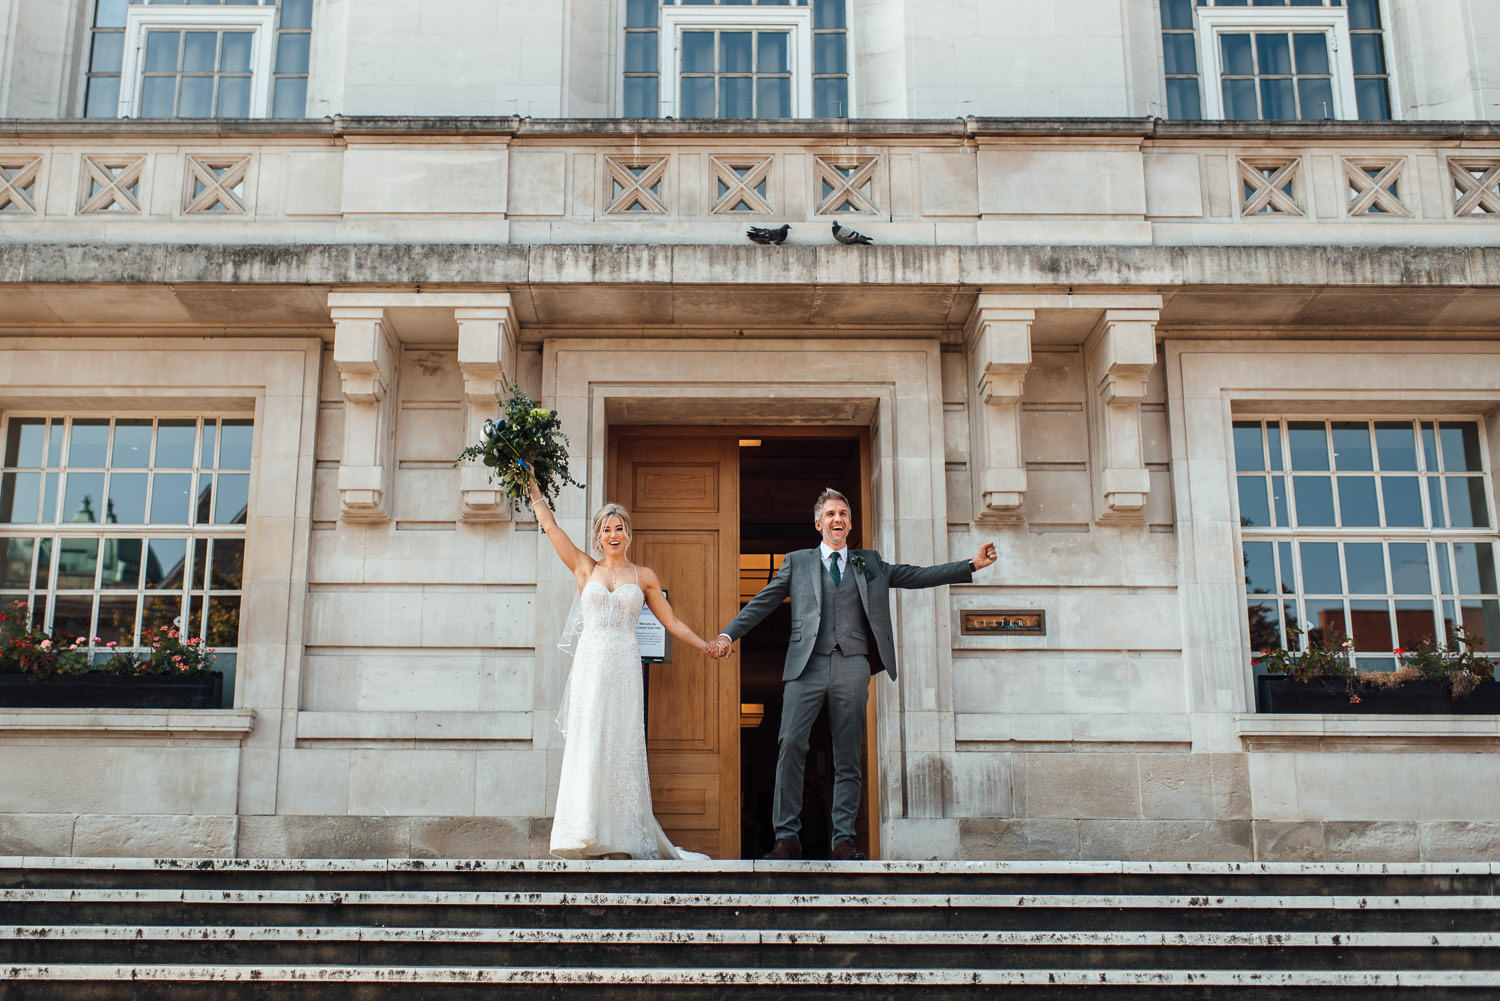 Hackney town hall wedding by creative london wedding photographer the shannons photography